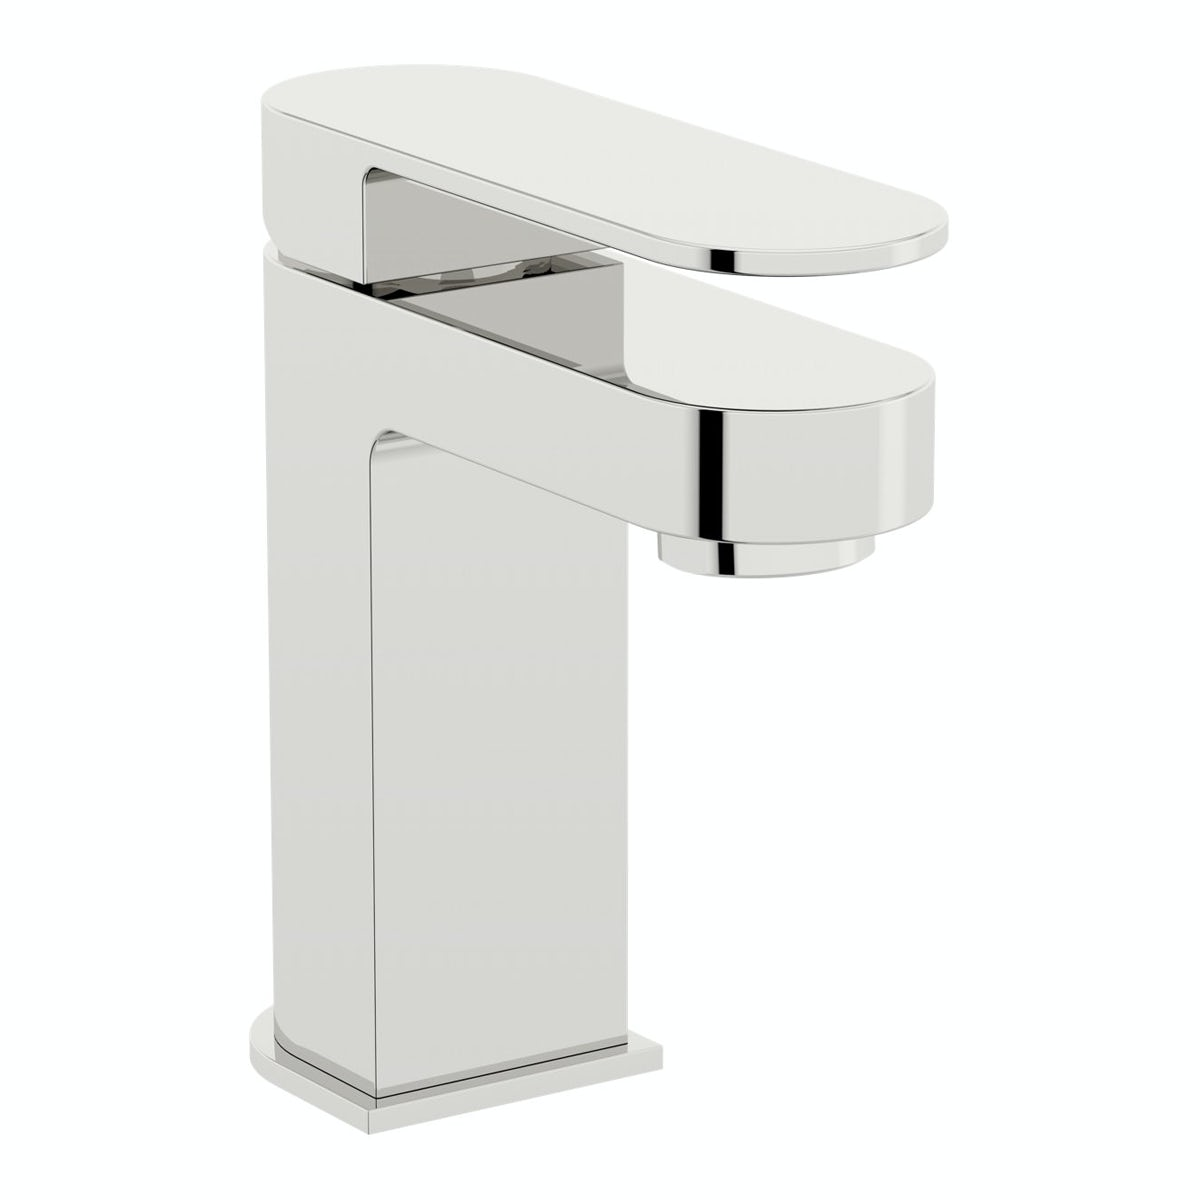 Stanford Cloakroom Basin Mixer